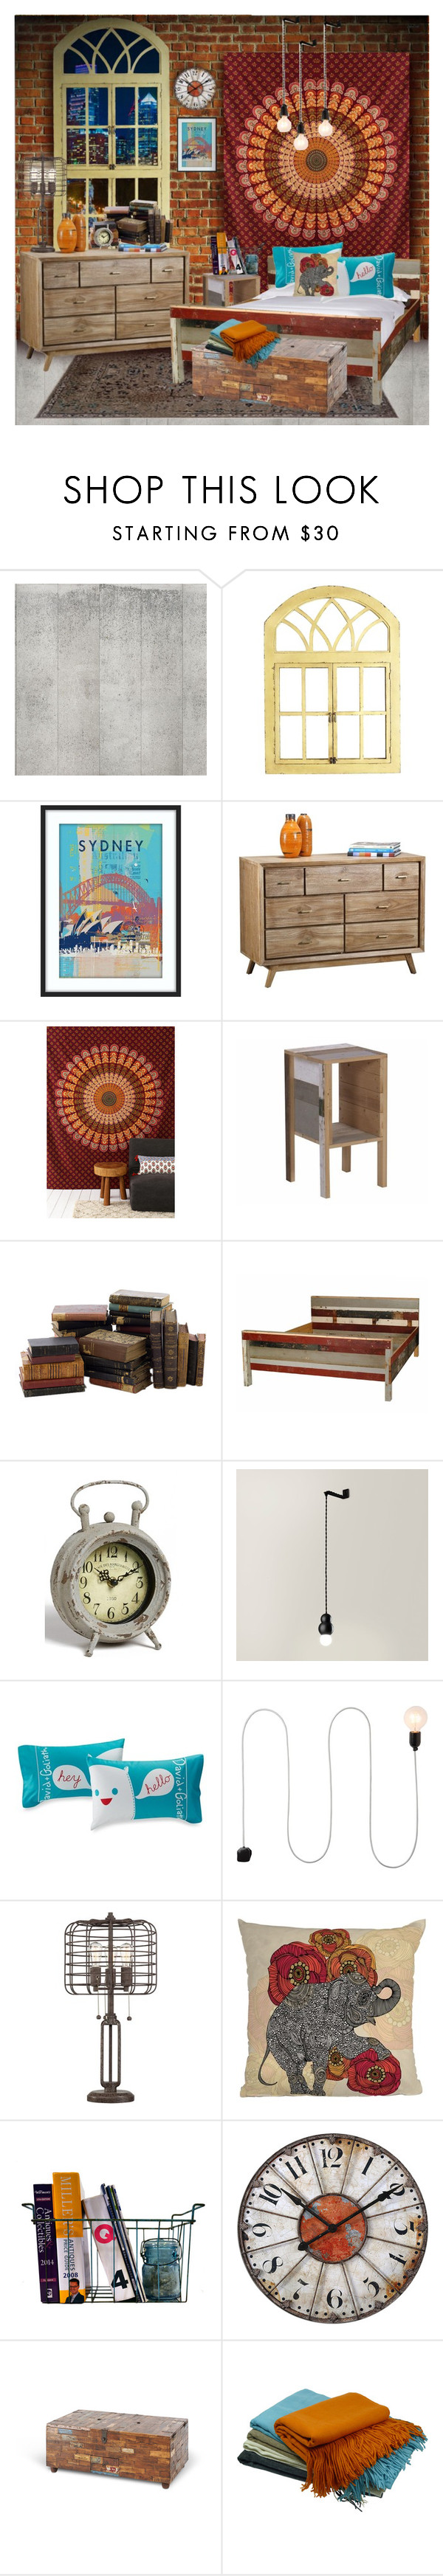 """patterns"" by rotunda ❤ liked on Polyvore featuring interior, interiors, interior design, home, home decor, interior decorating, WALL, NLXL, Franklin and Pier 1 Imports"